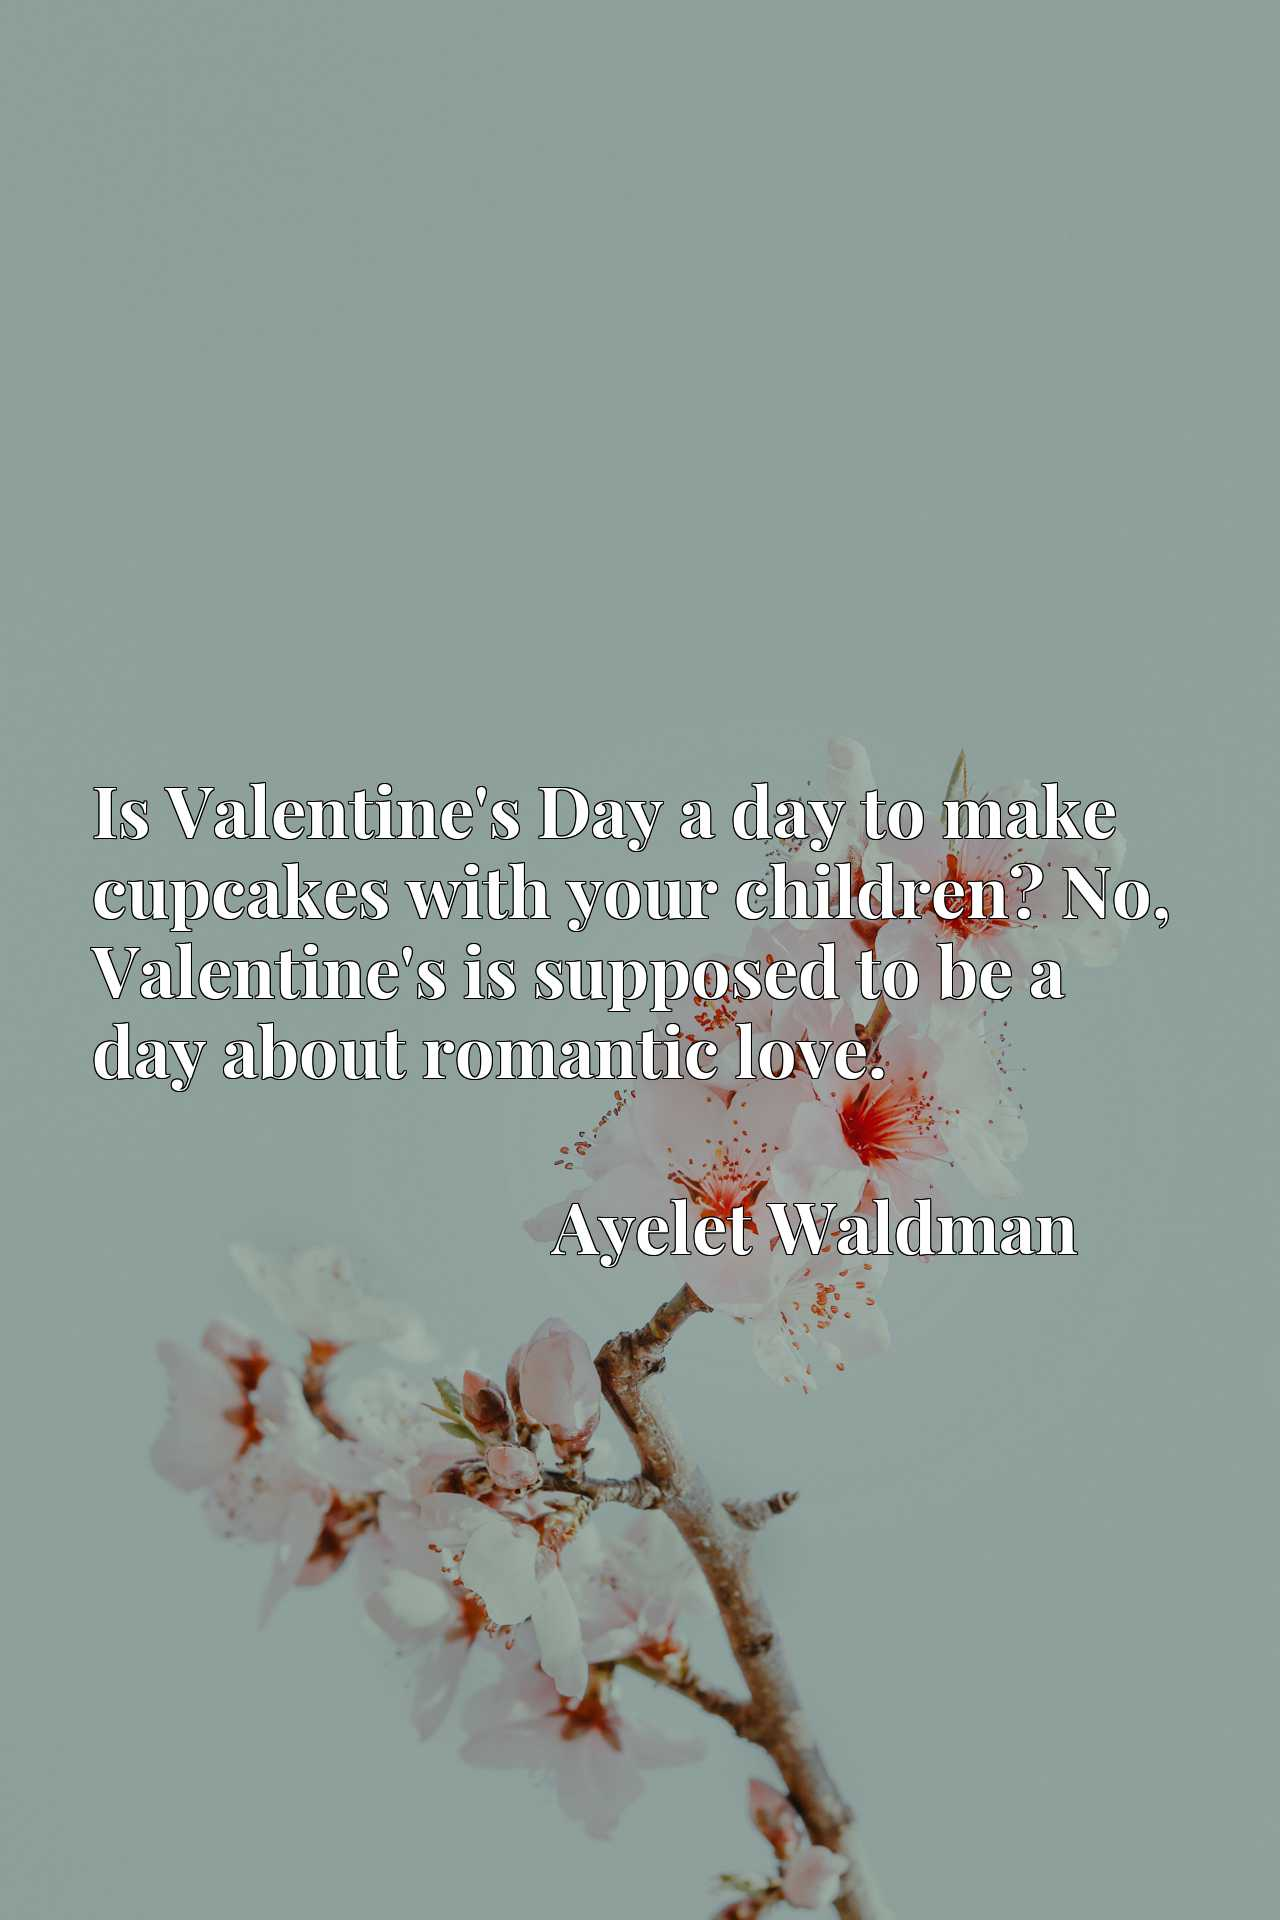 Is Valentine's Day a day to make cupcakes with your children? No, Valentine's is supposed to be a day about romantic love.